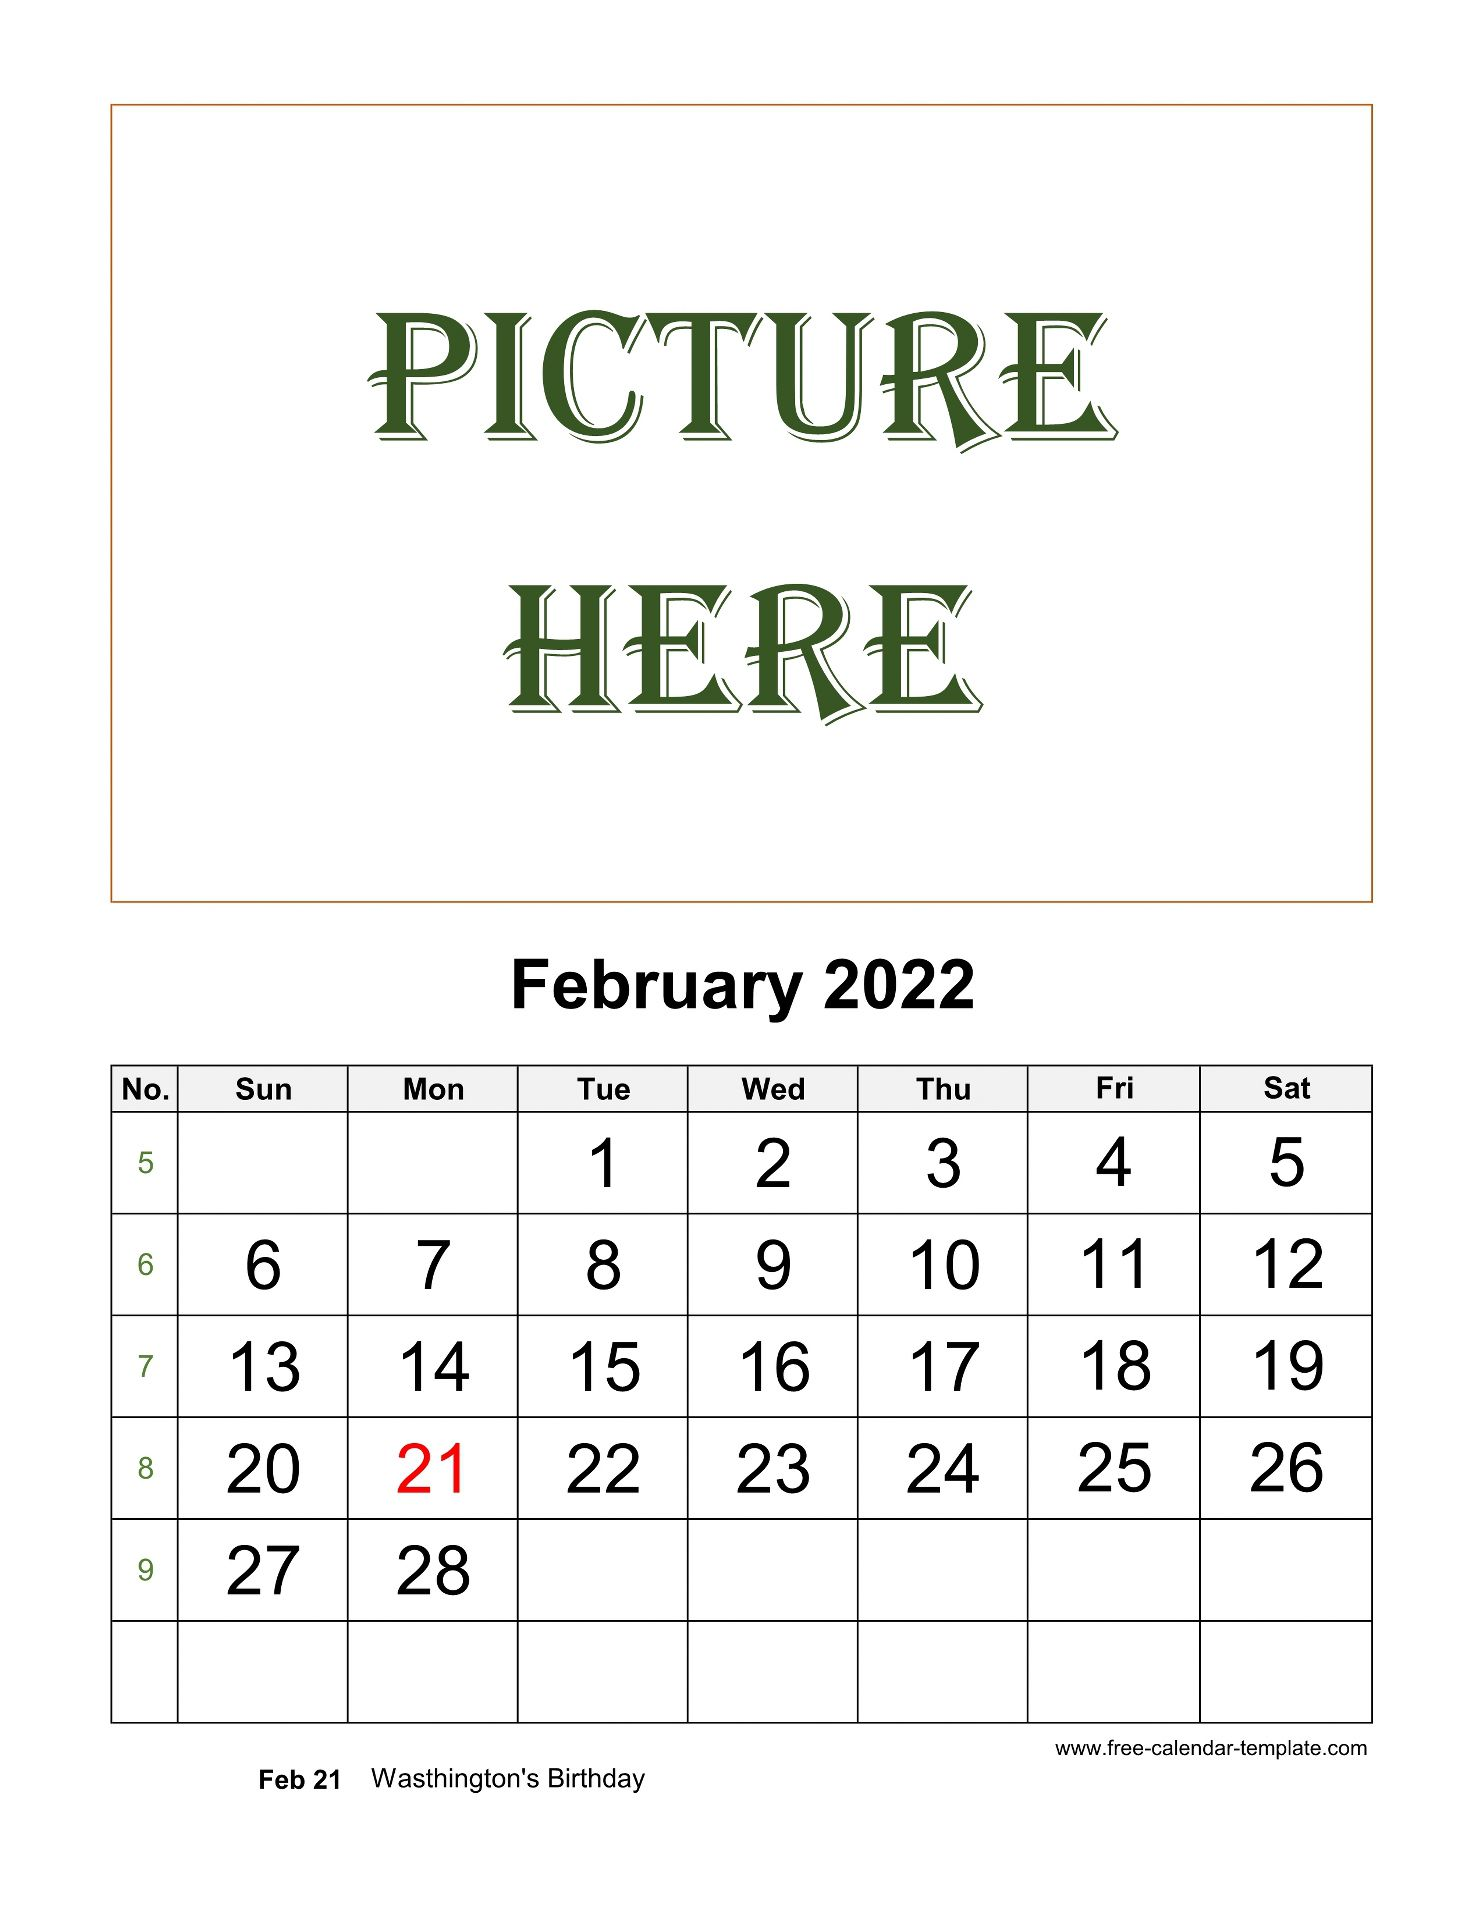 Remembering bill due dates is easy with a system for noting what needs to be paid and whether you've done with these free printable bill calendars. February Printable 2022 Calendar, space for add picture ...